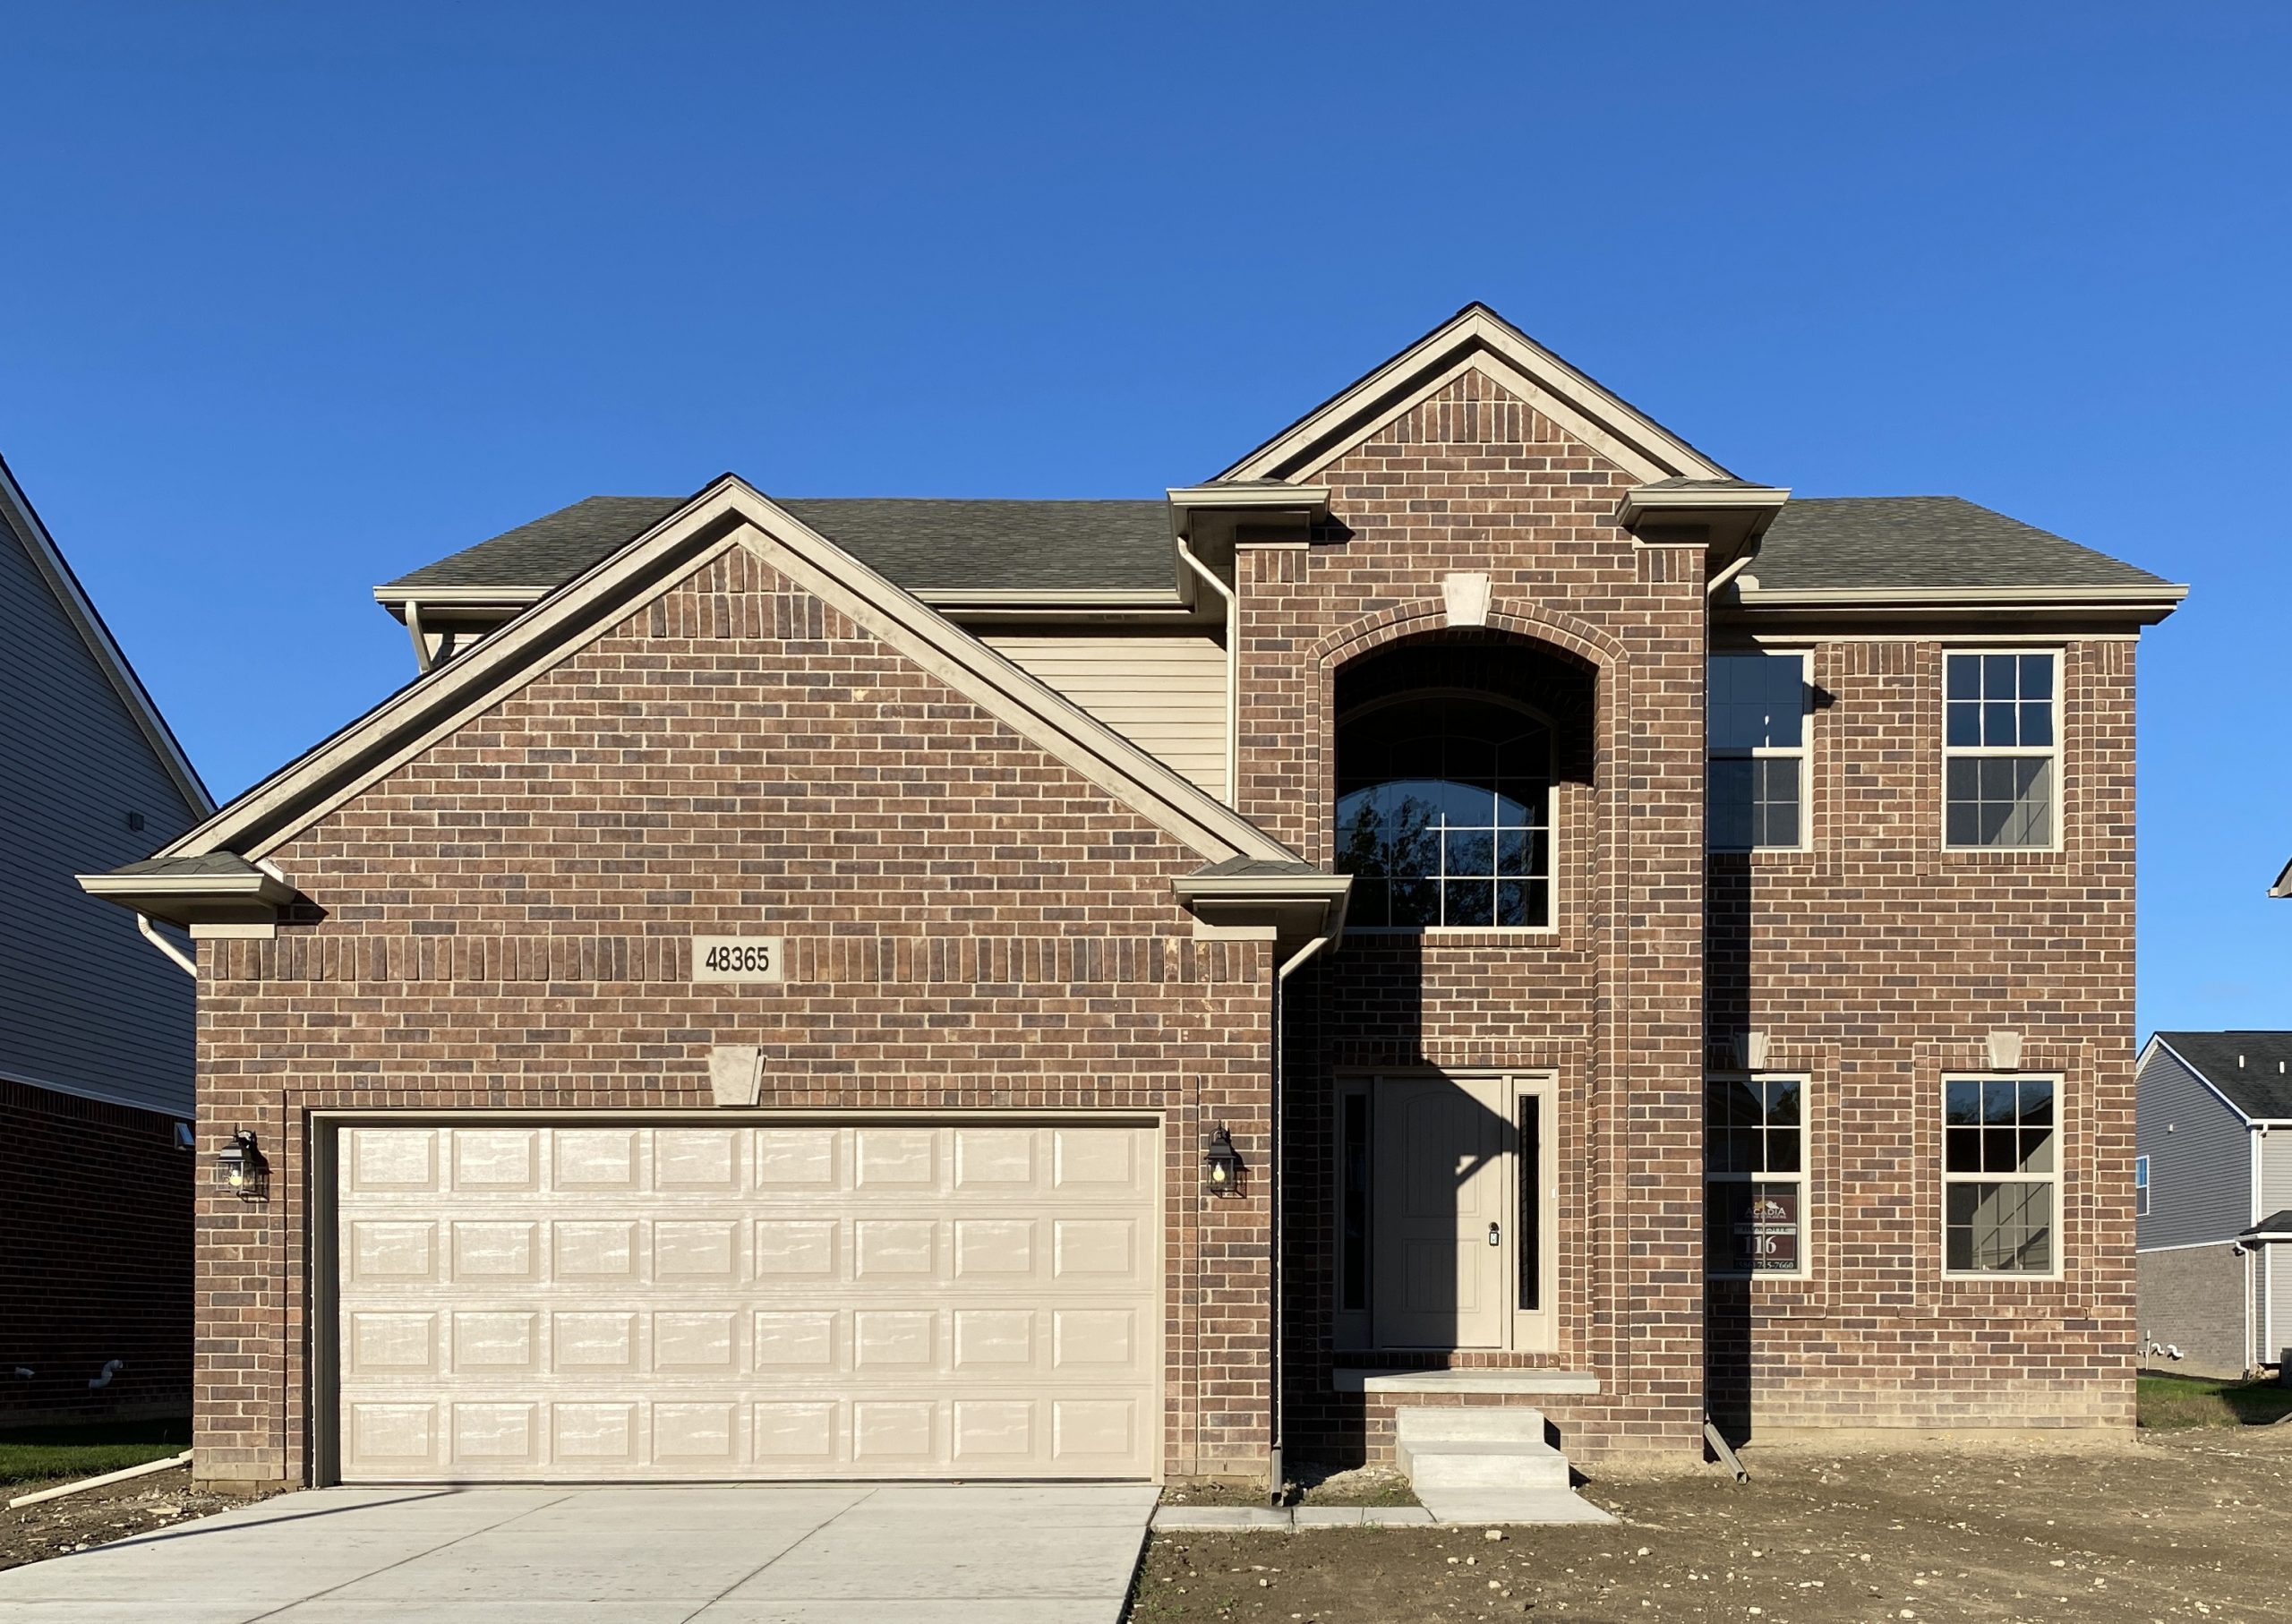 2450 4 Single Hung - Meadowbrook